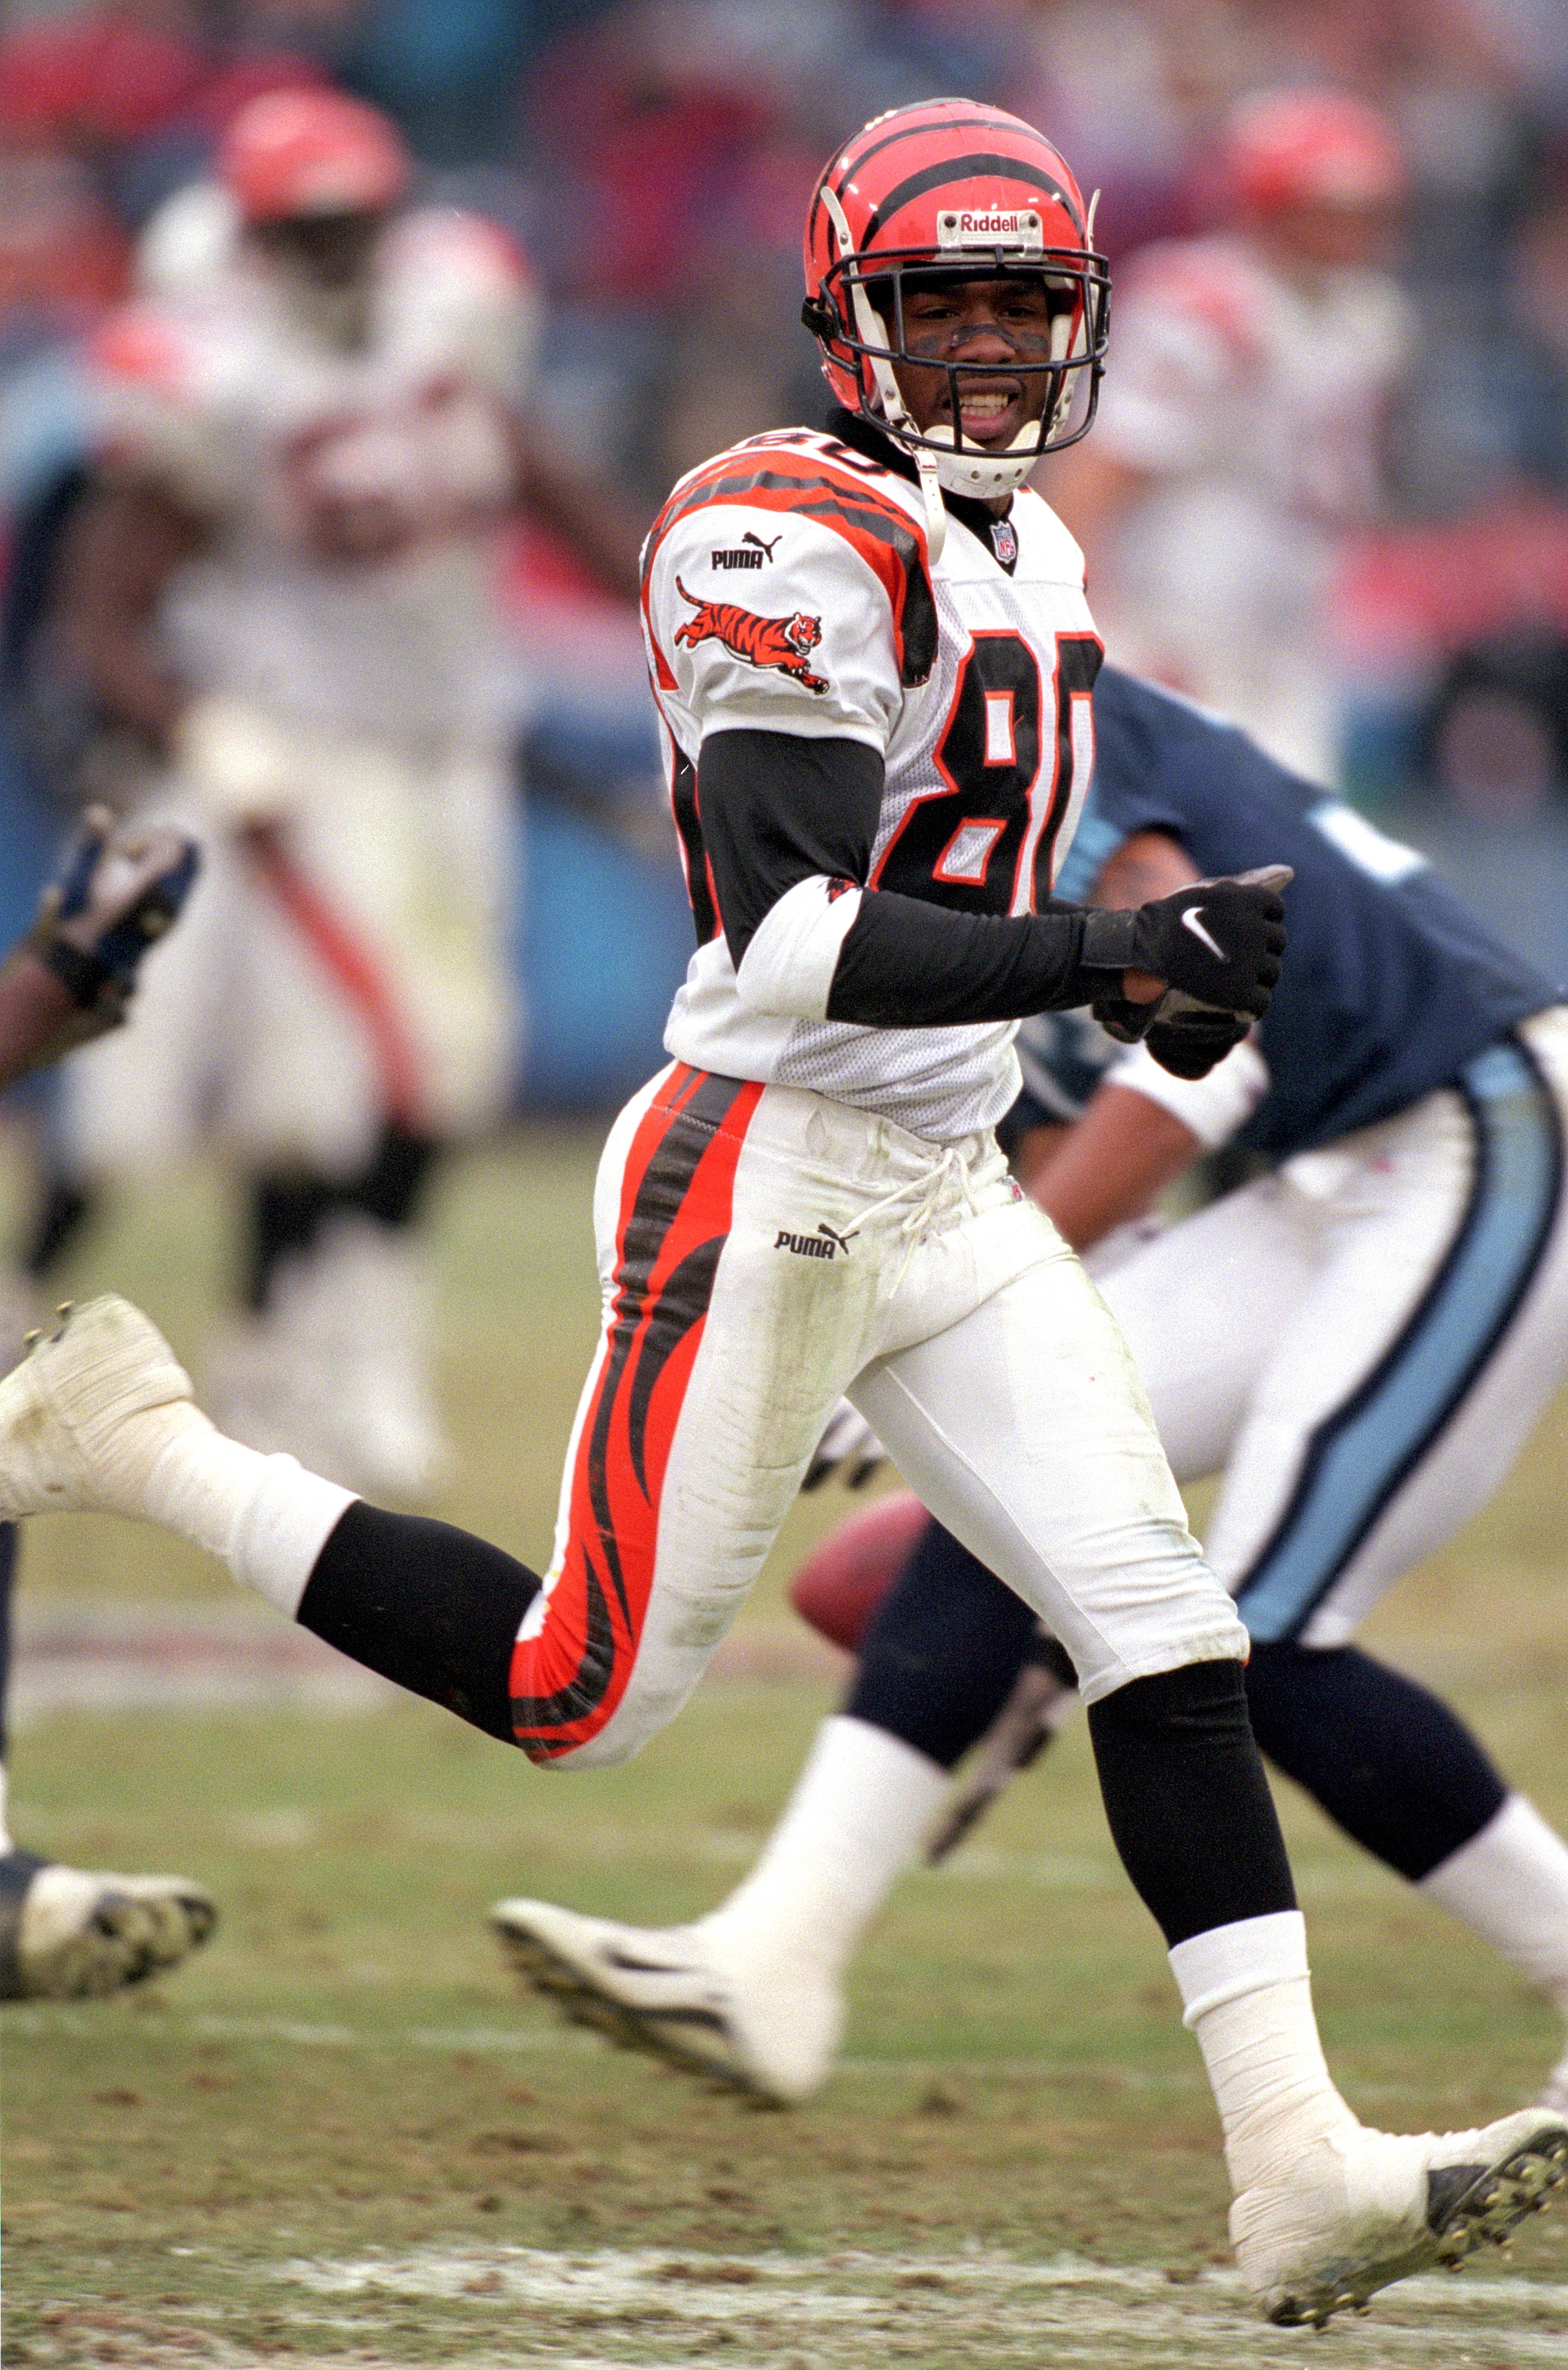 NASHVILLE, TN - DECEMBER 10:  Wide receiver Peter Warrick #80 of the Cincinnati Bengals runs on the field during the game against the Tennessee Titans at Adelphia Coliseum on December 10, 2000 in Nashville, Tennessee.  The Titans defeated the Bengals 35-3